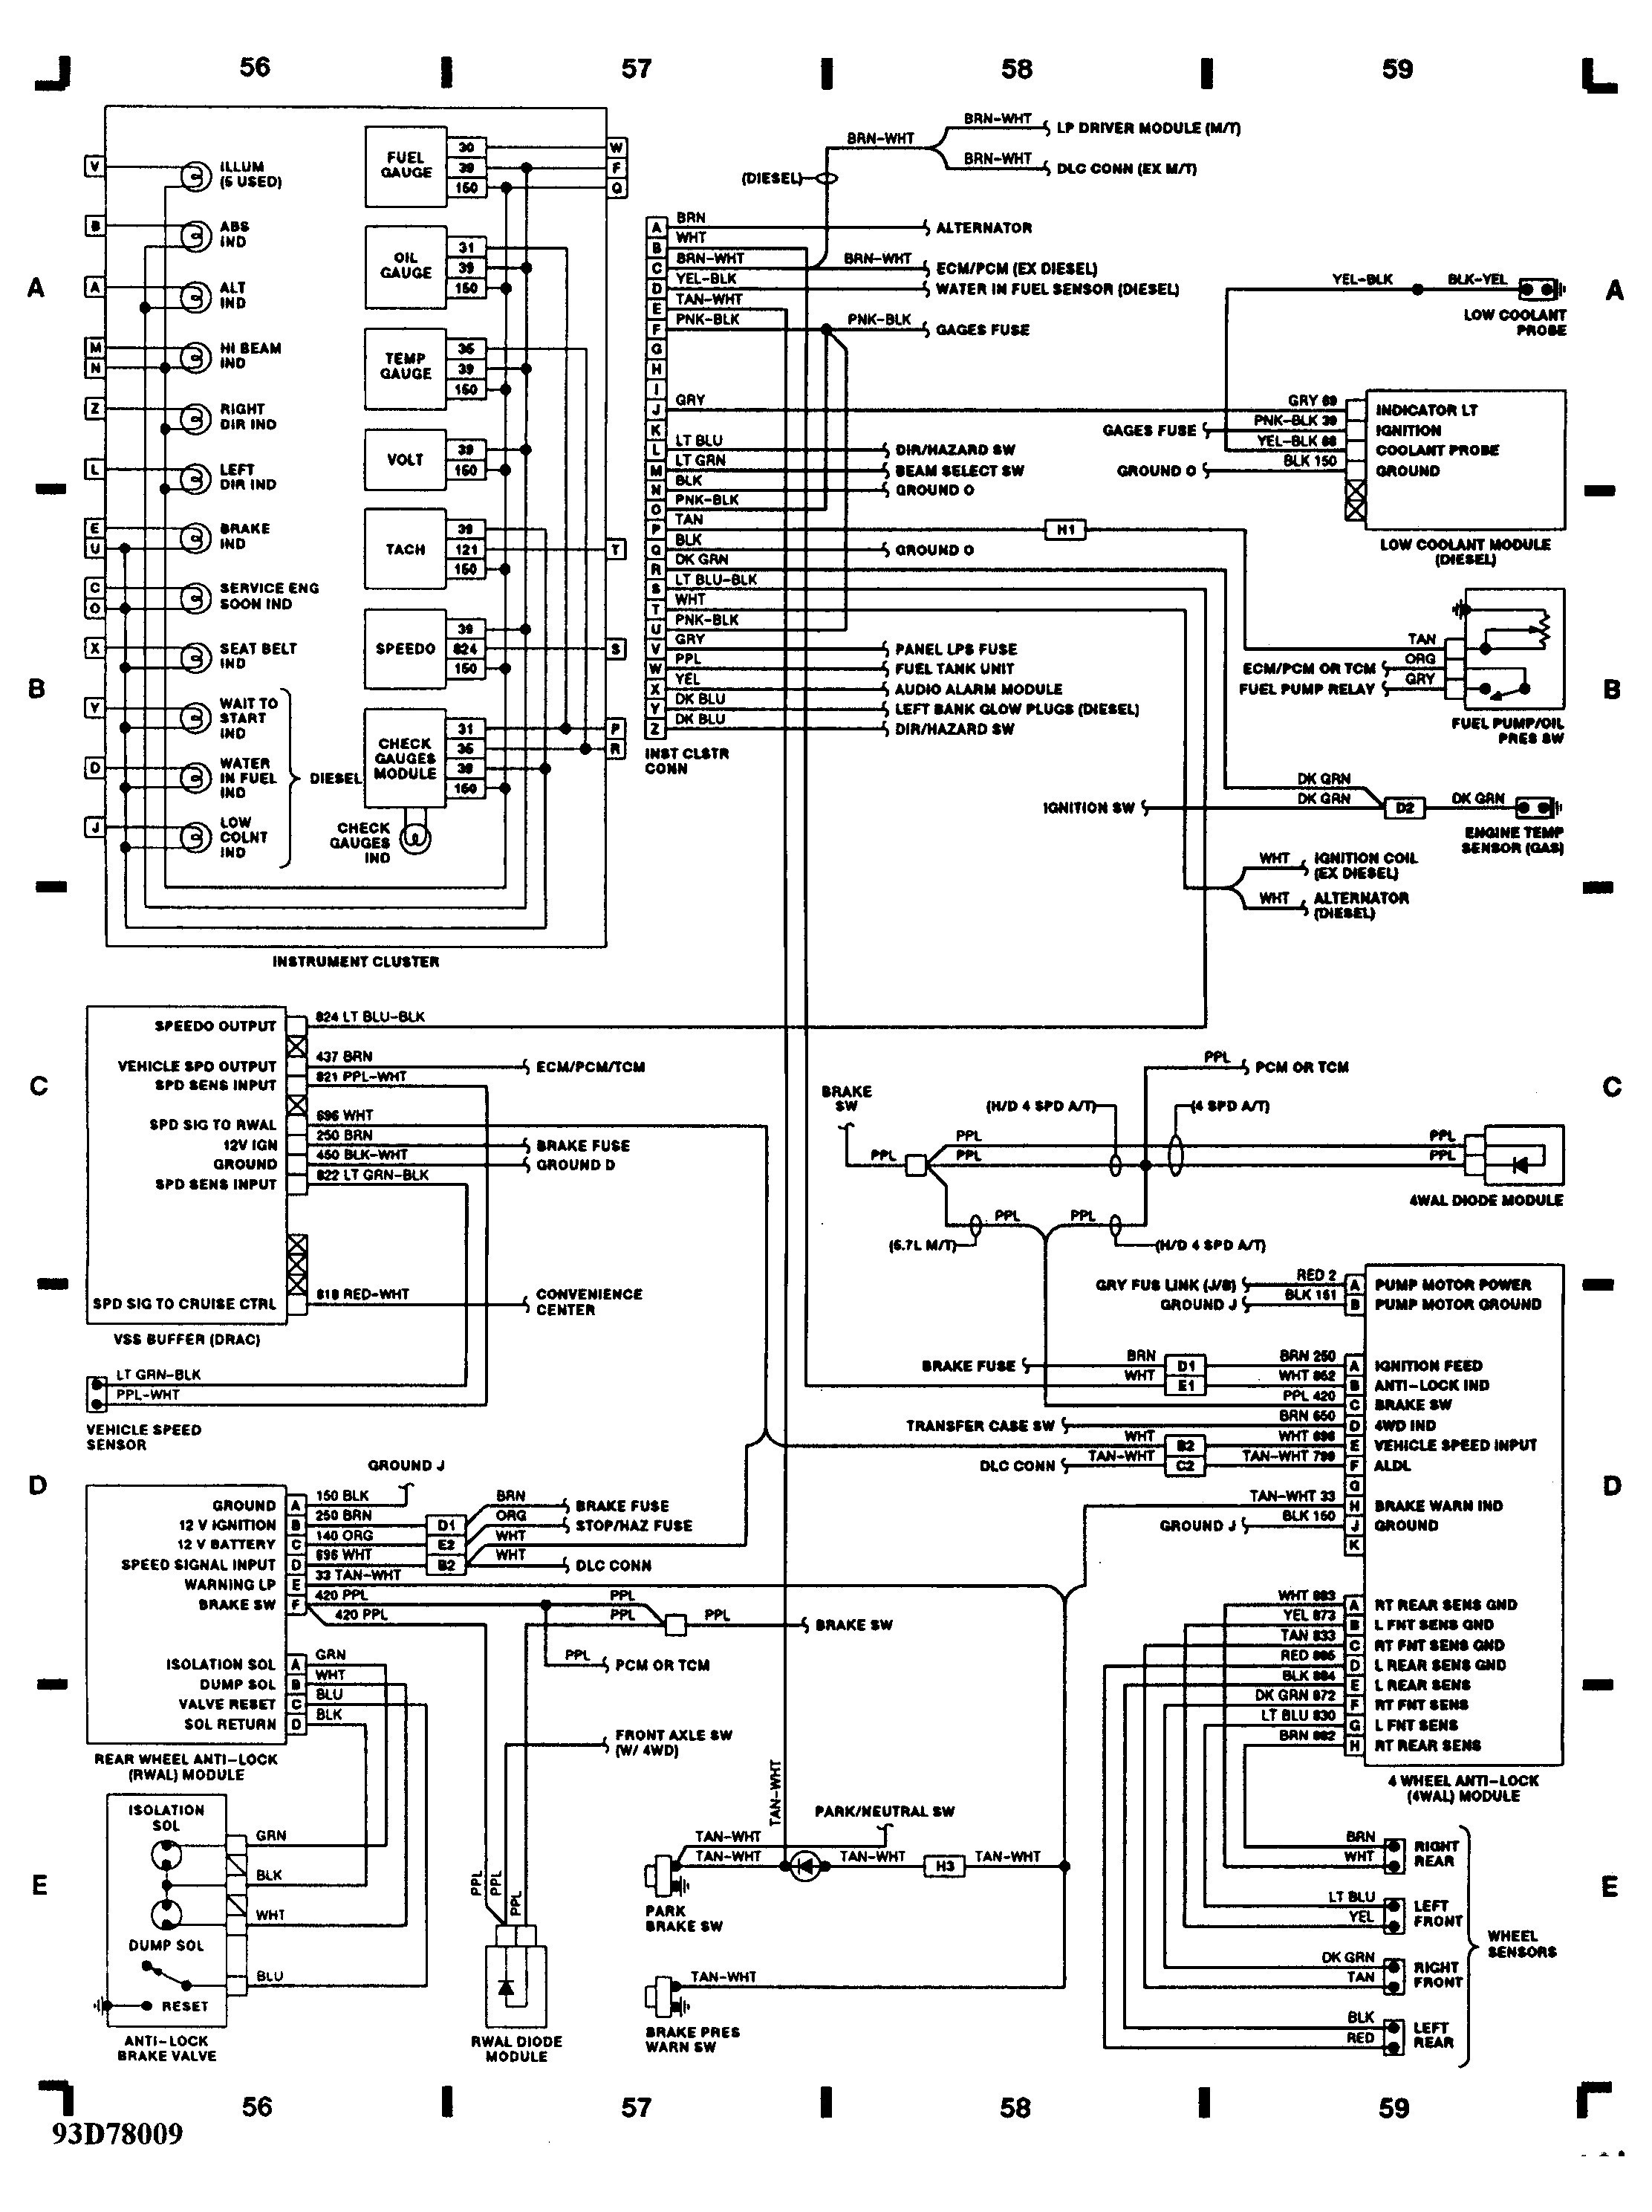 5 7l engine diagram buick trusted wiring diagram u2022 rh govjobs co 1999 Buick Century Vacuum Diagram Buick Century Transmission Diagram